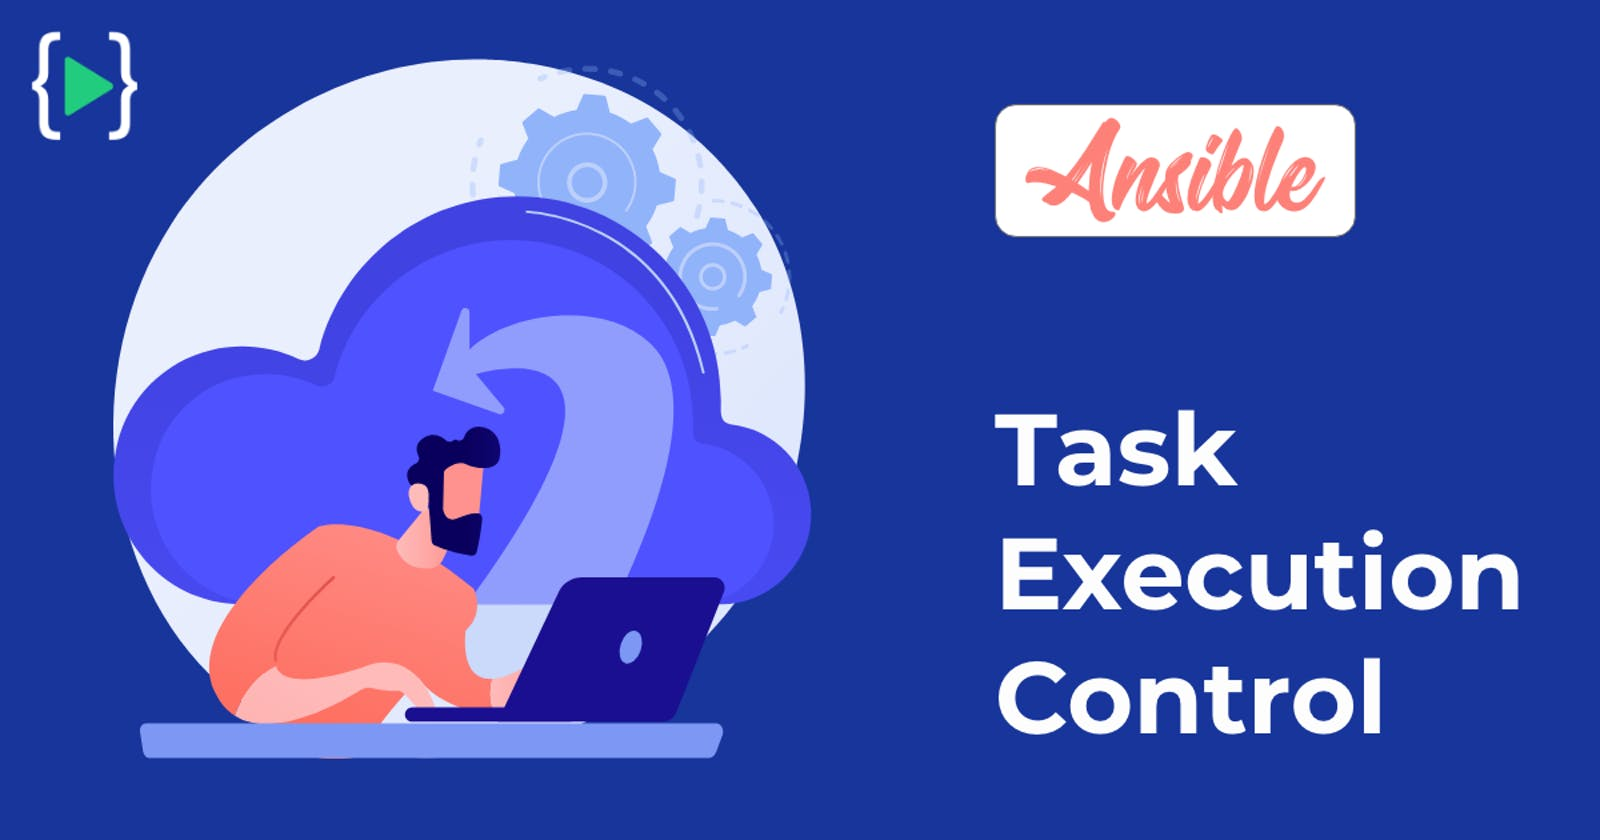 Ansible Task Execution Control - Conditional Statements